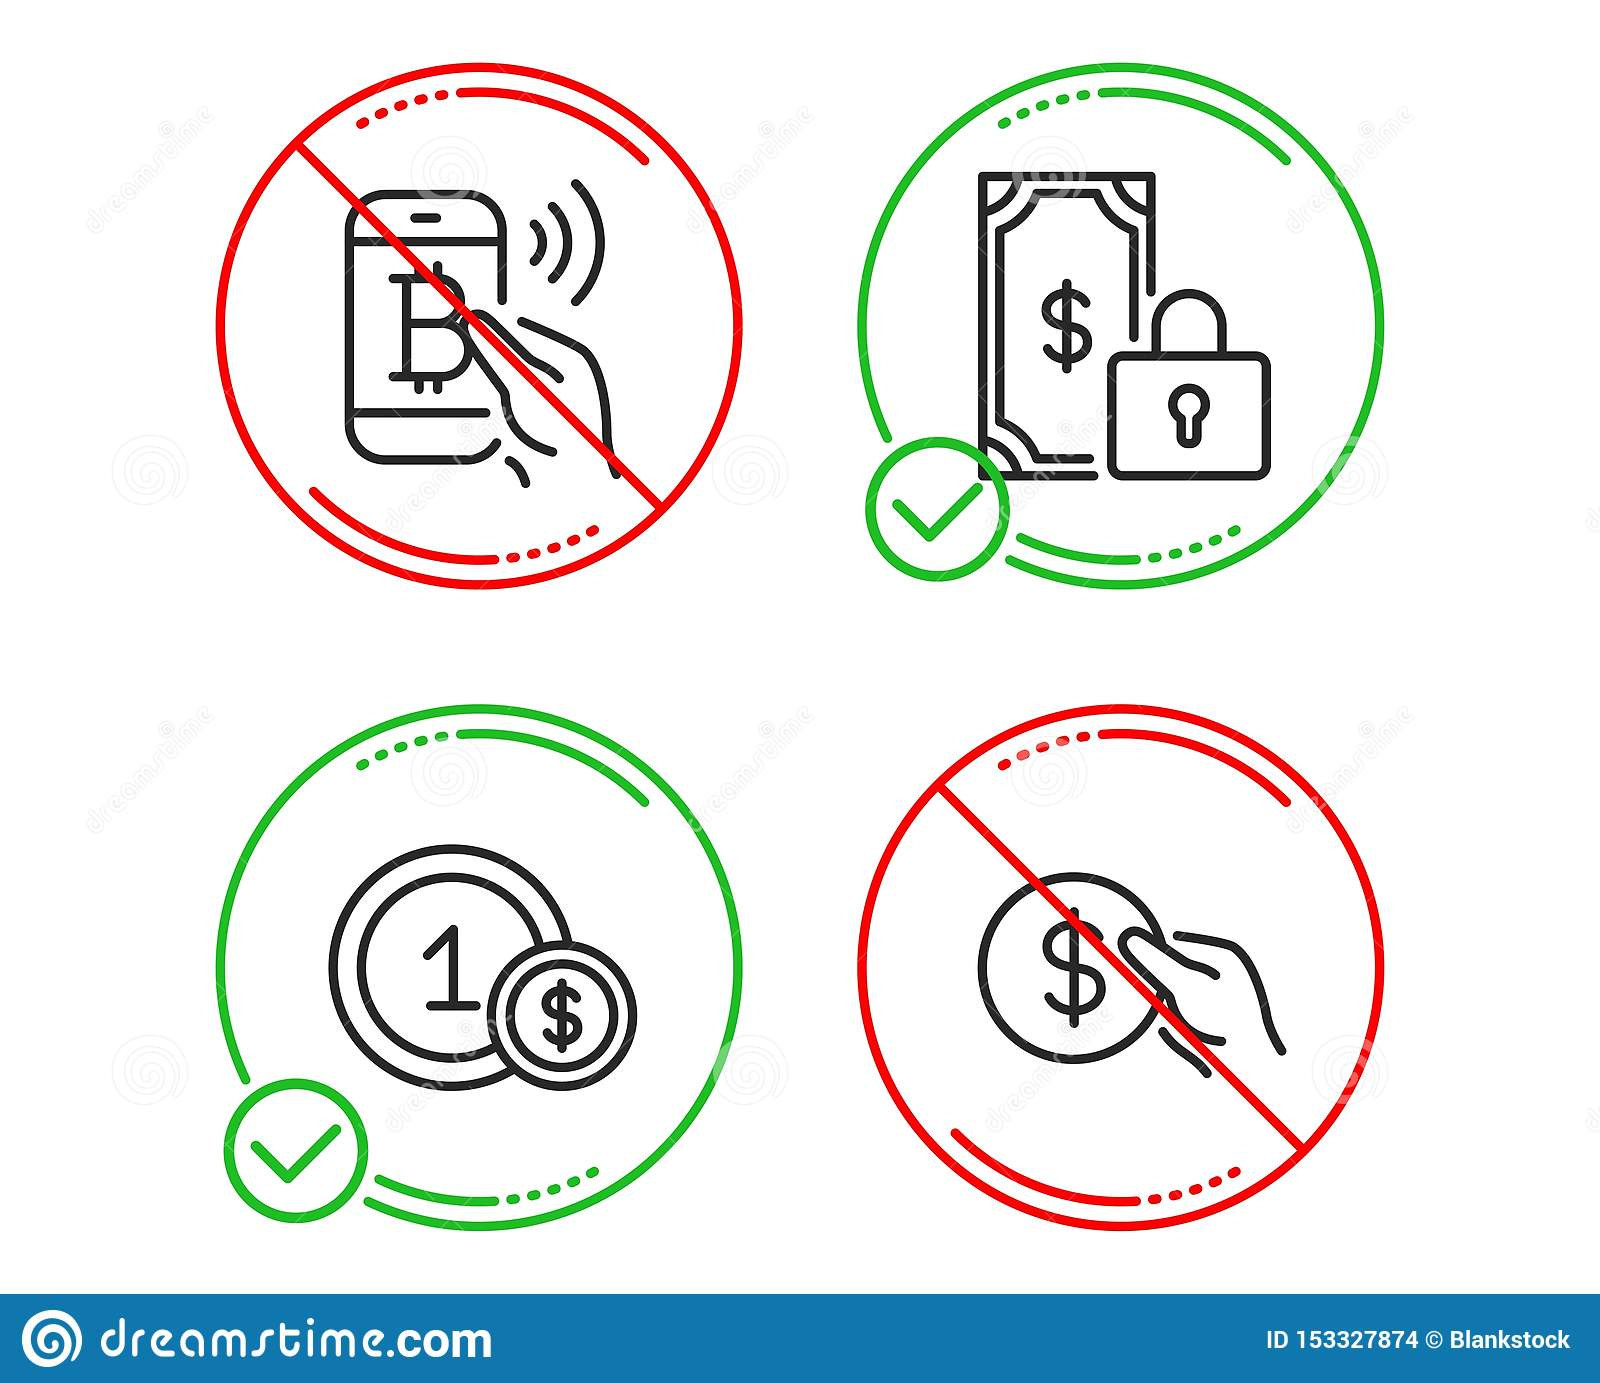 Usd Coins Bitcoin Pay And Private Payment Icons Set Payment Sign Secure Finance Usd Coin Finance Set Vector Stock Vector Illustration Of Coin Contribution 153327874